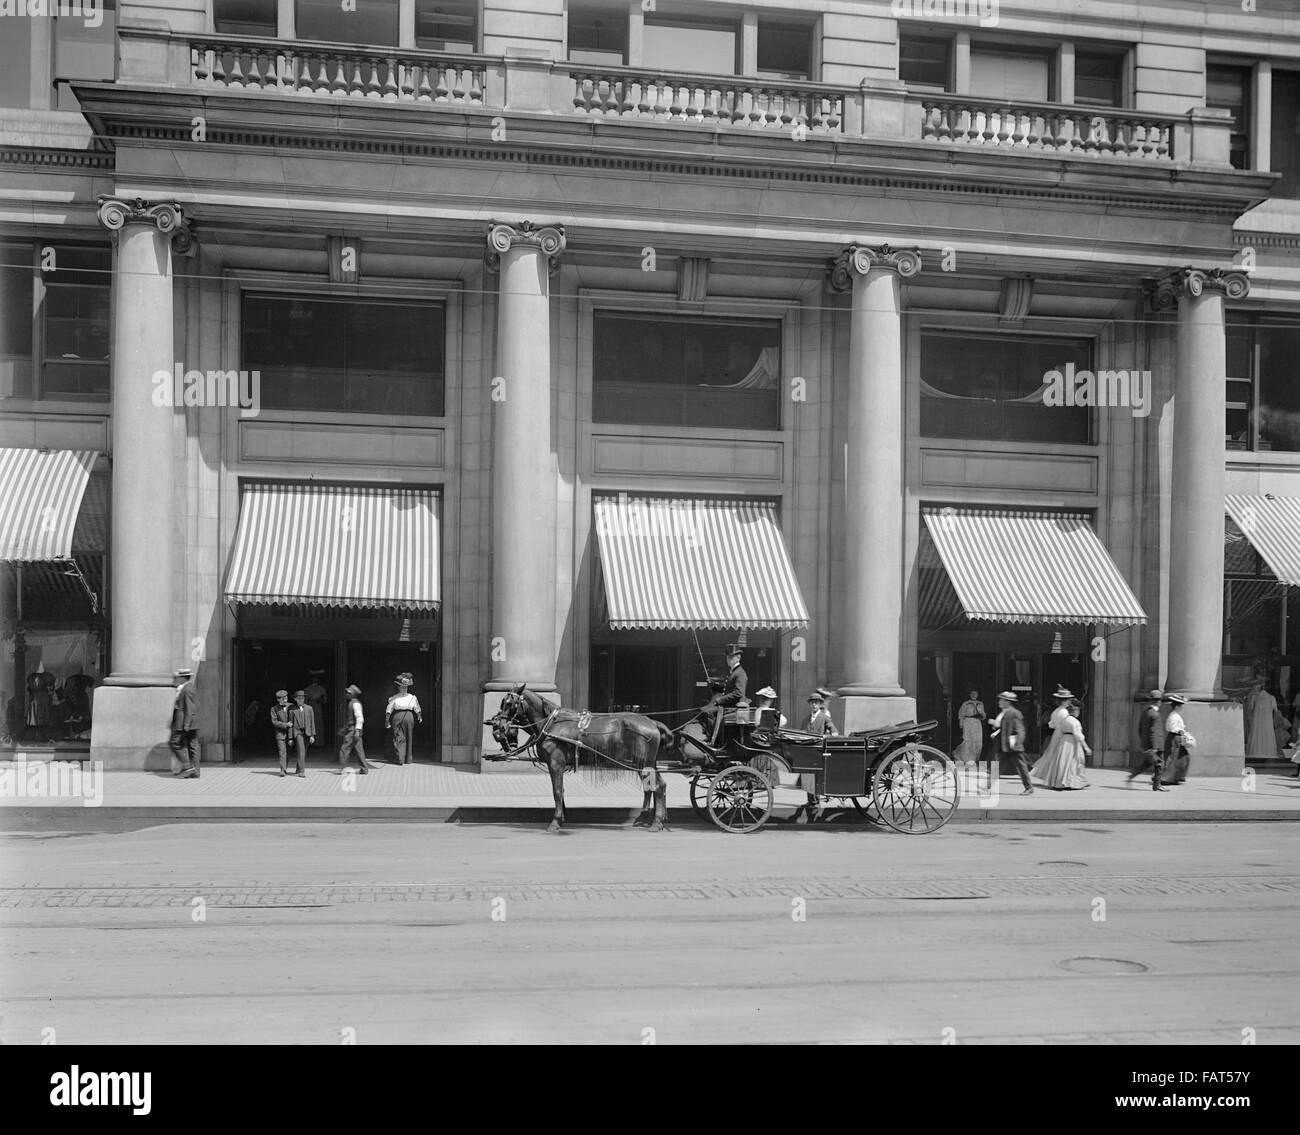 Entrance to Marshall Field's Store, Chicago, Illinois, USA, circa 1908 - Stock Image